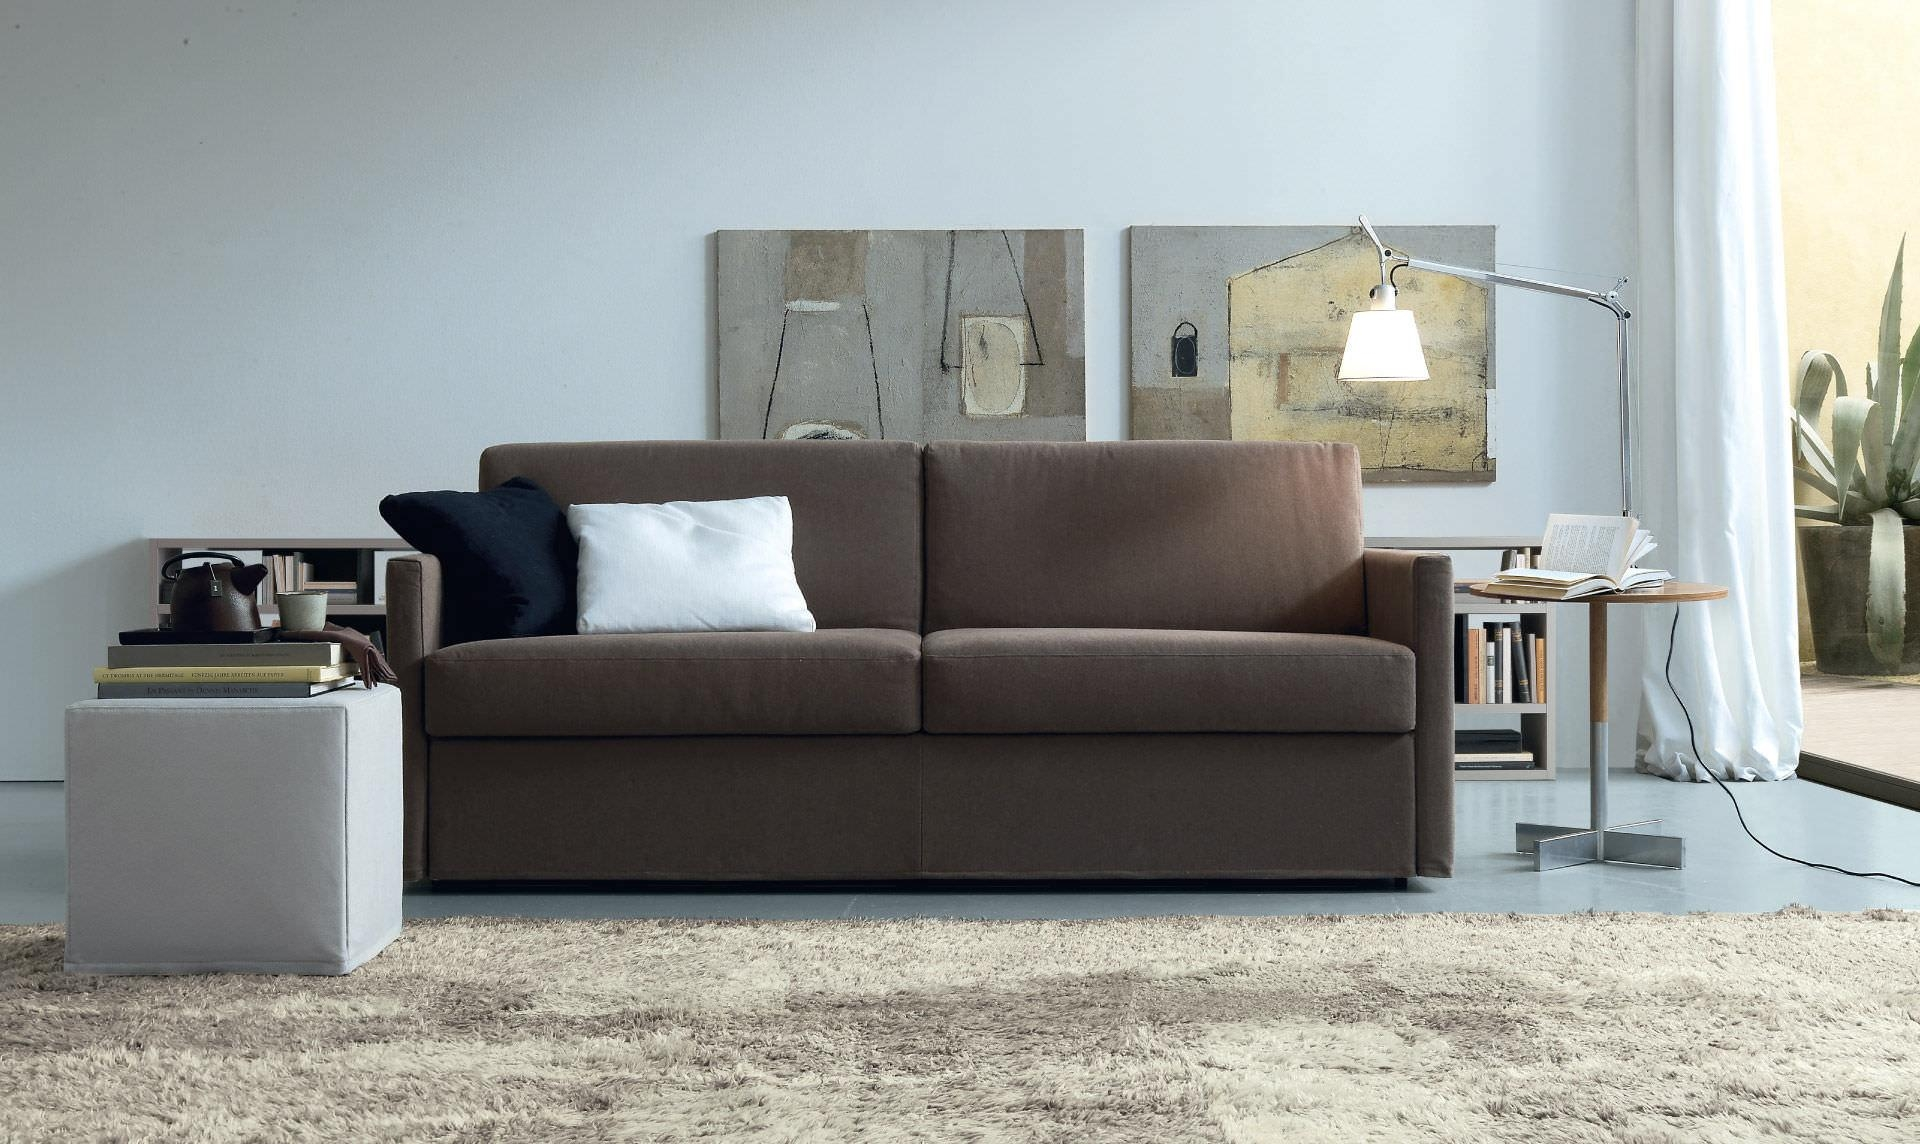 Sofa Bed / Contemporary / Fabric / 2 Seater – Luis – Jesse Inside Contemporary Fabric Sofas (View 15 of 20)